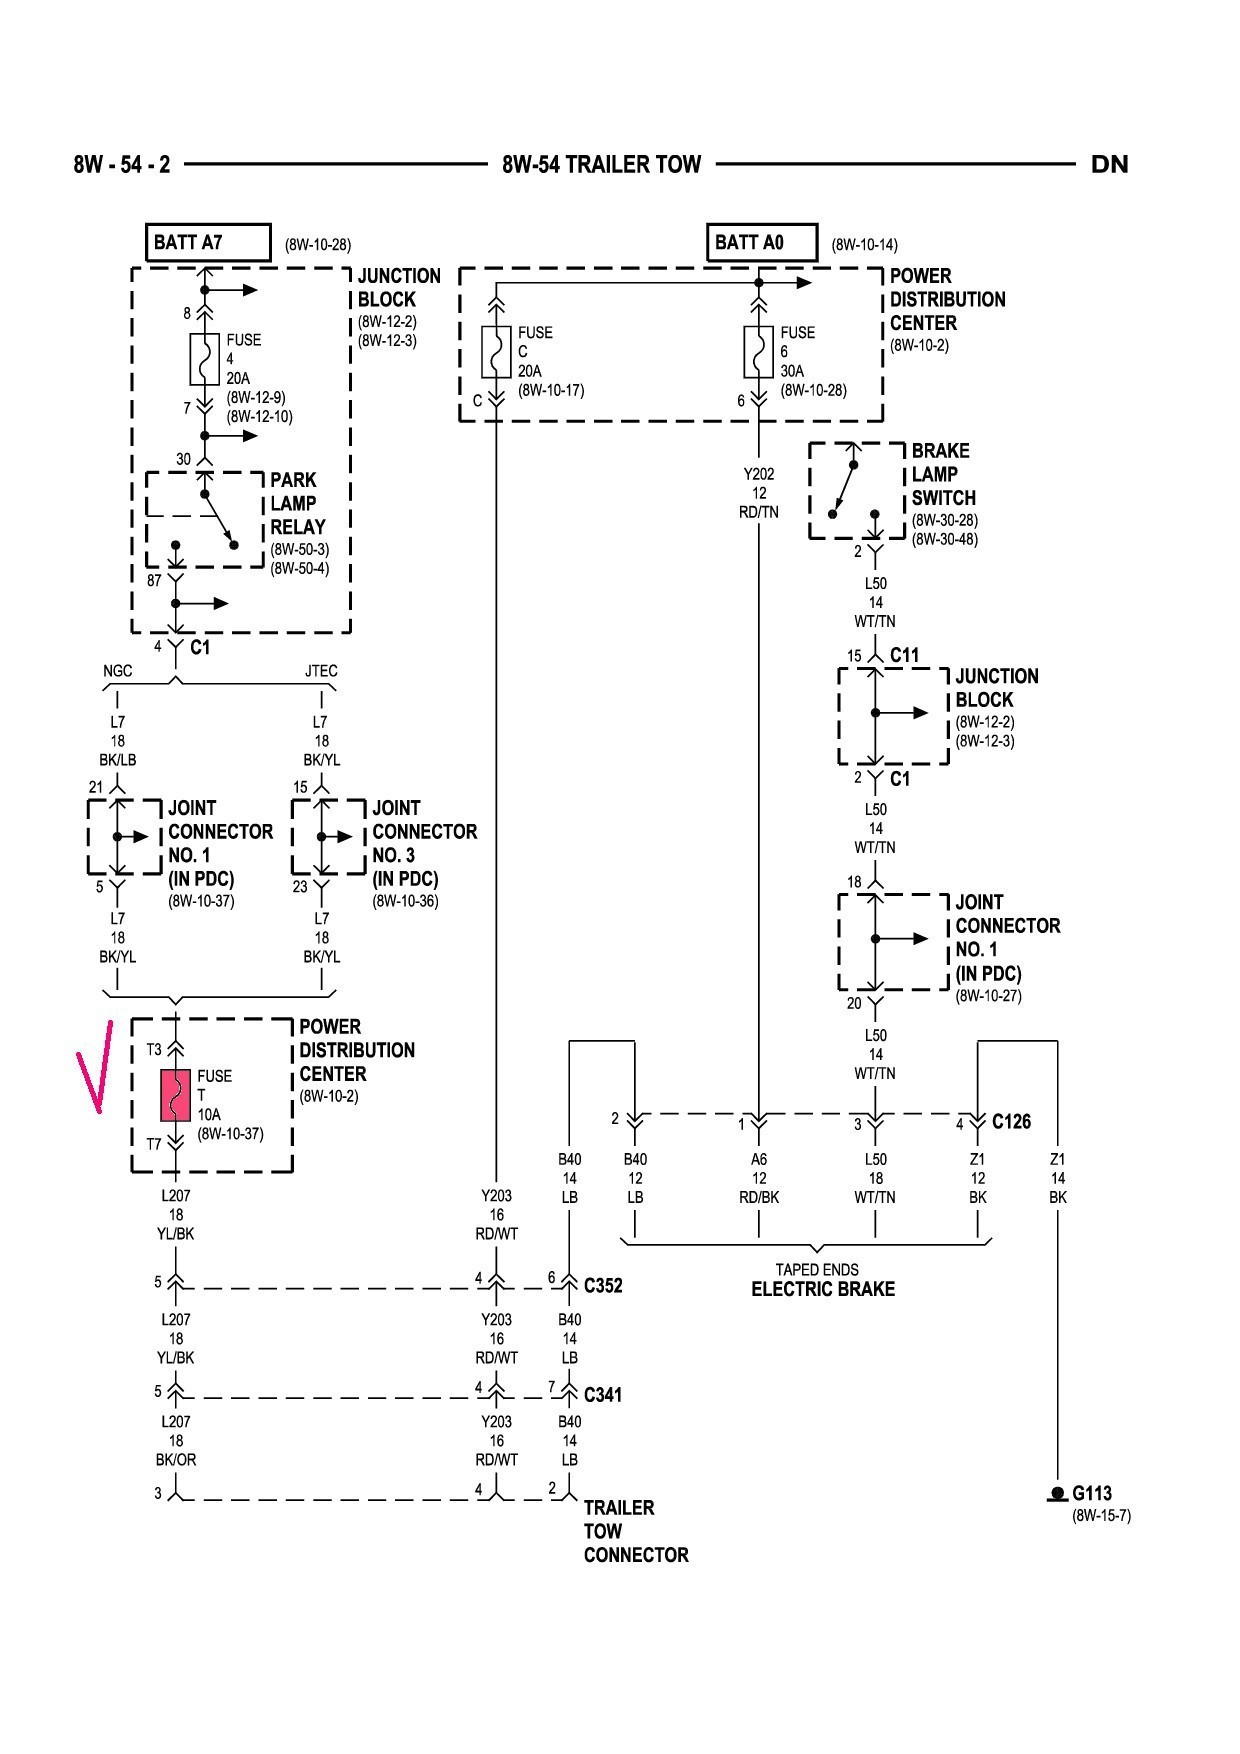 2005 Dodge Ram 3500 Wiring Diagram from wholefoodsonabudget.com